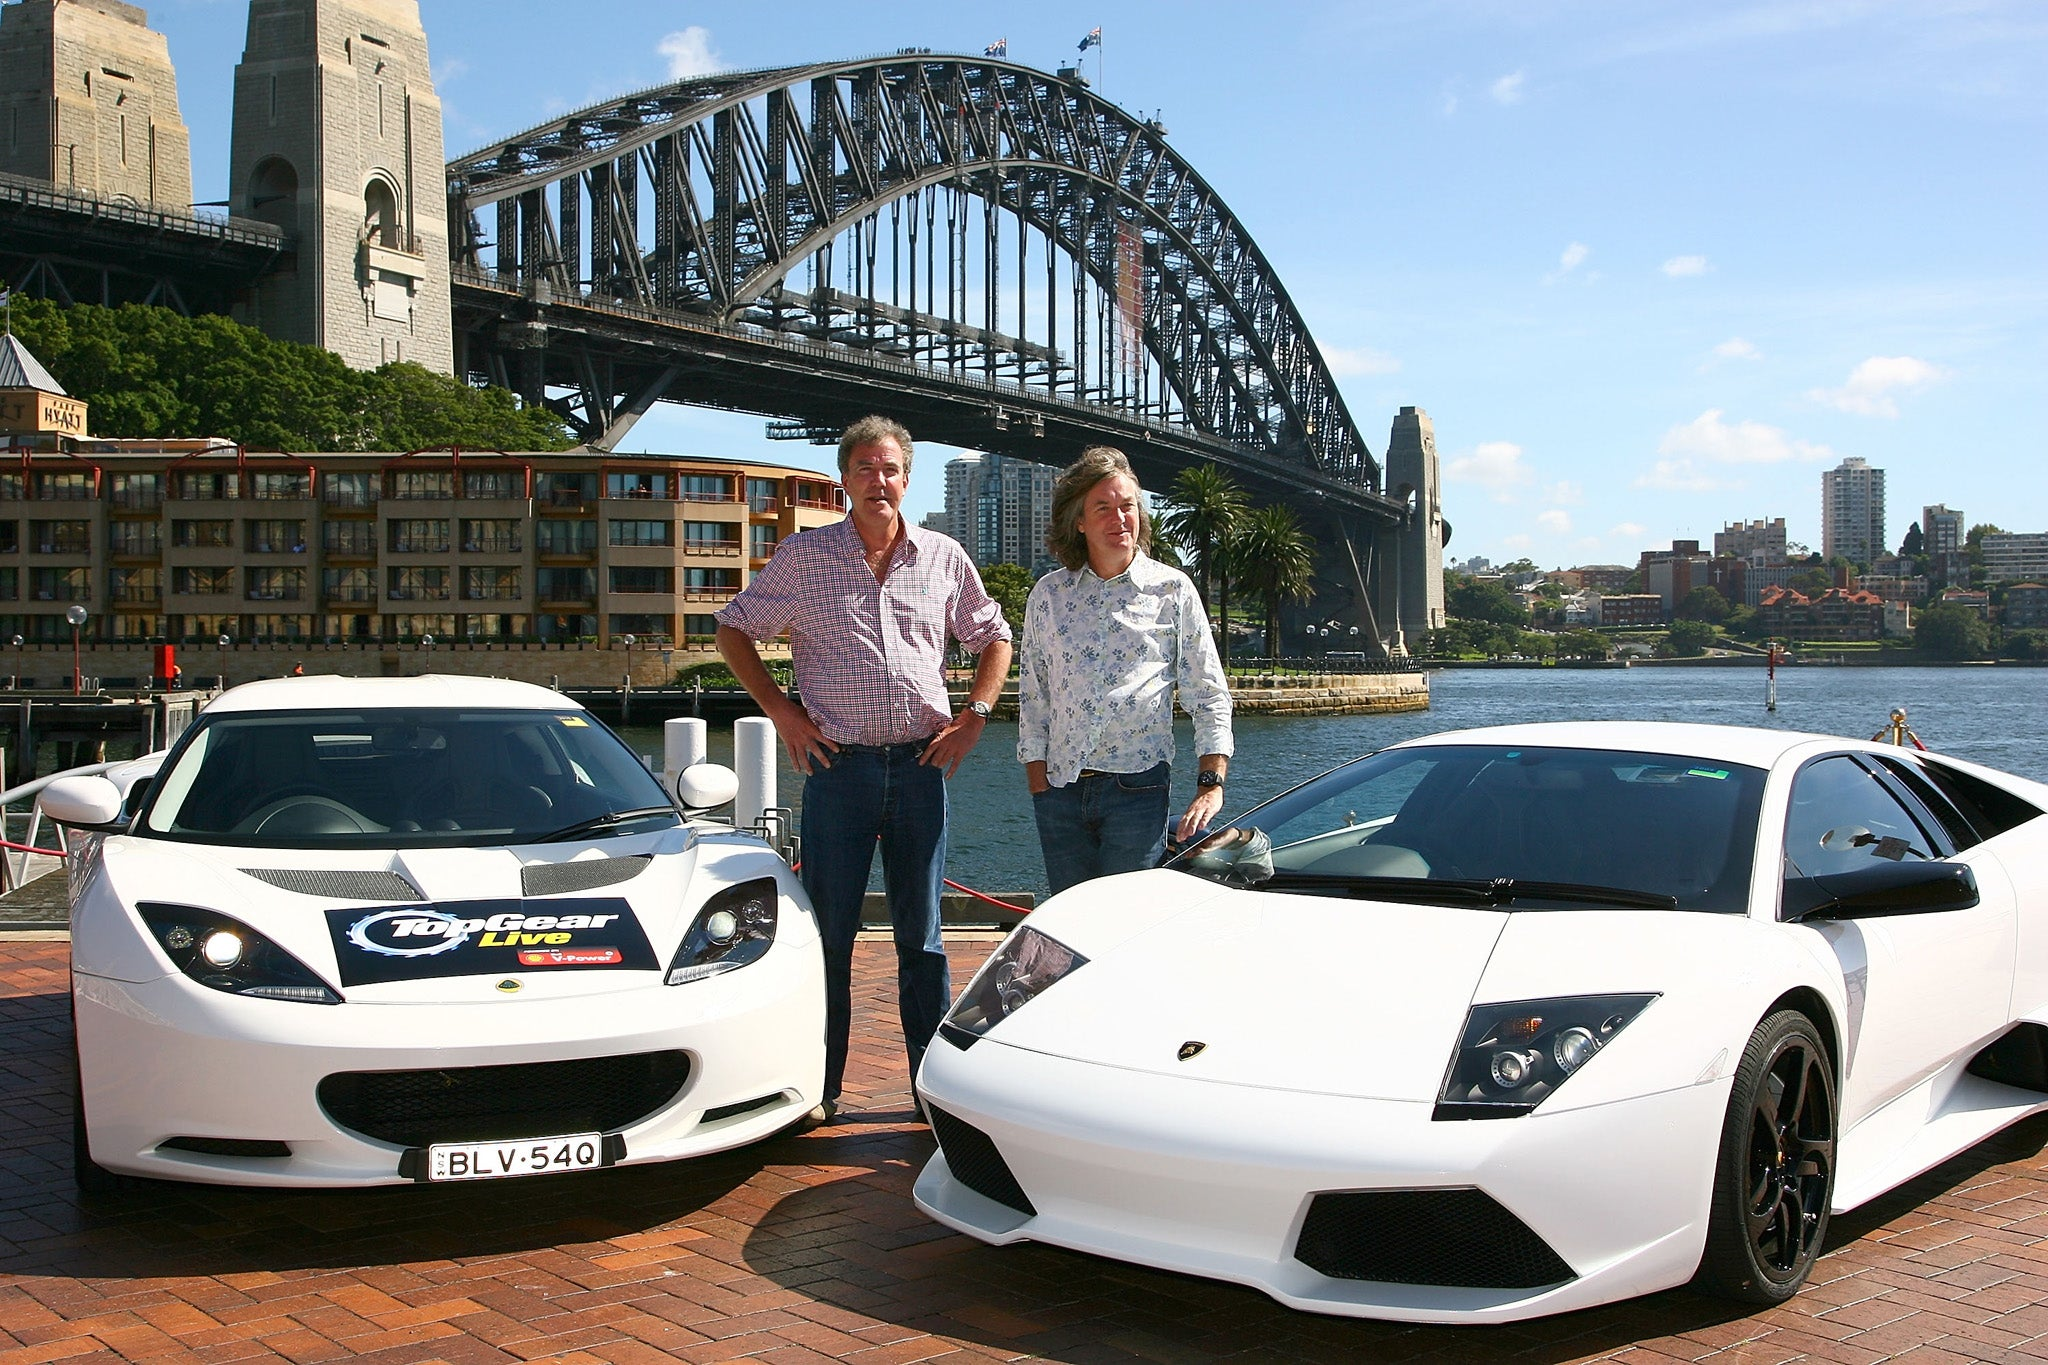 top gear in a spin as jeremy clarkson insults convict australians